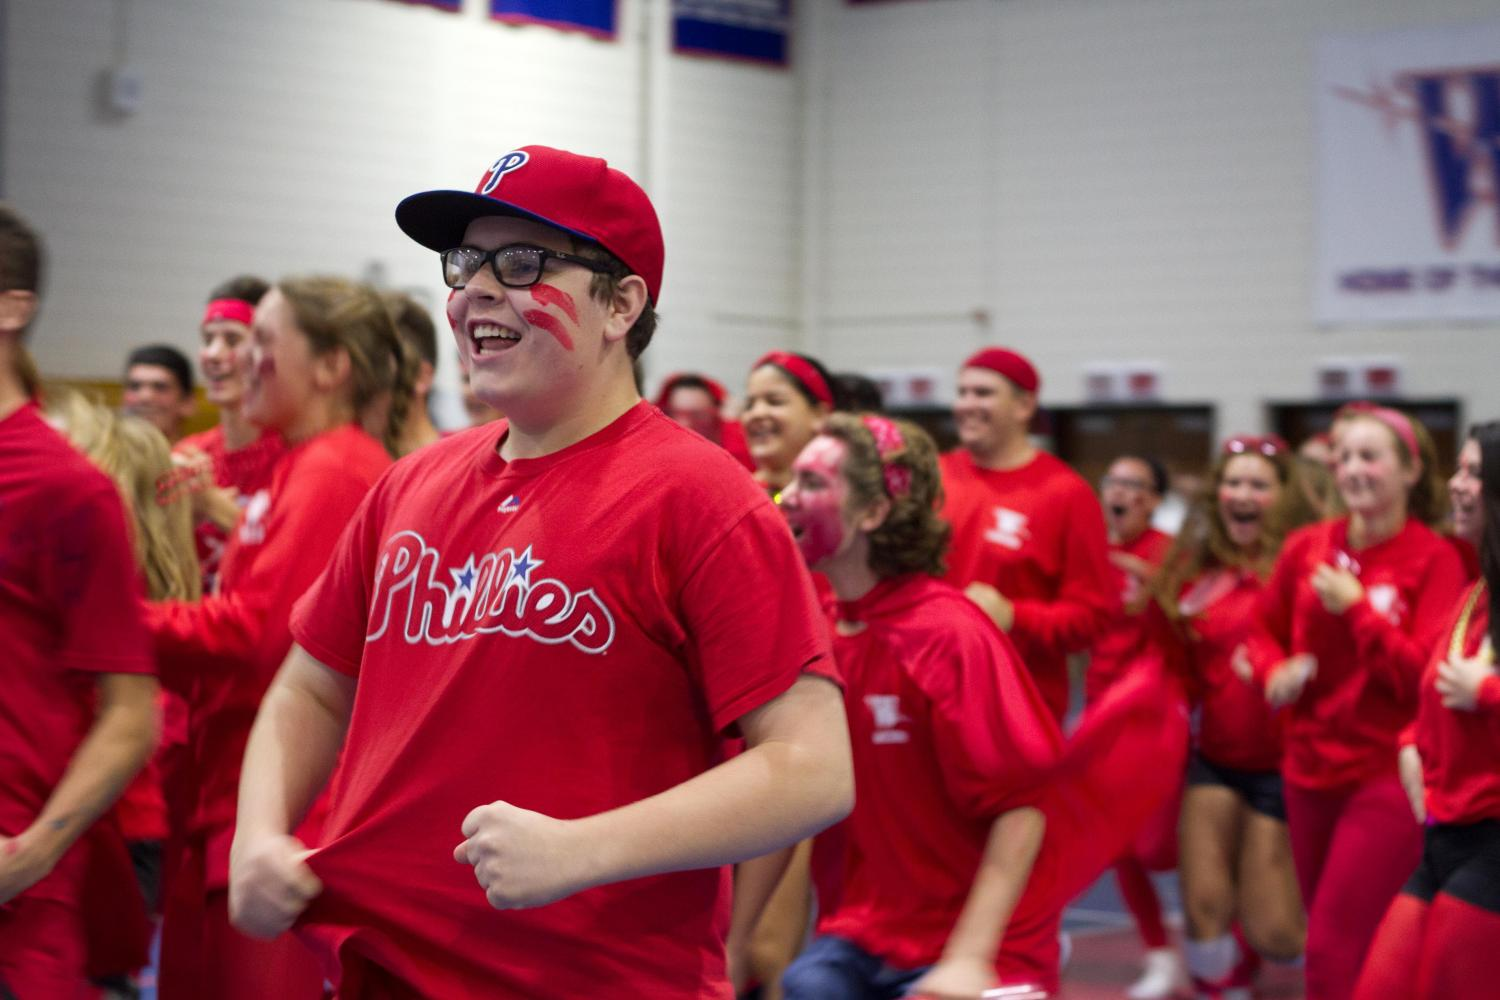 Senior Bruce Taggart during last year's Color Wars.